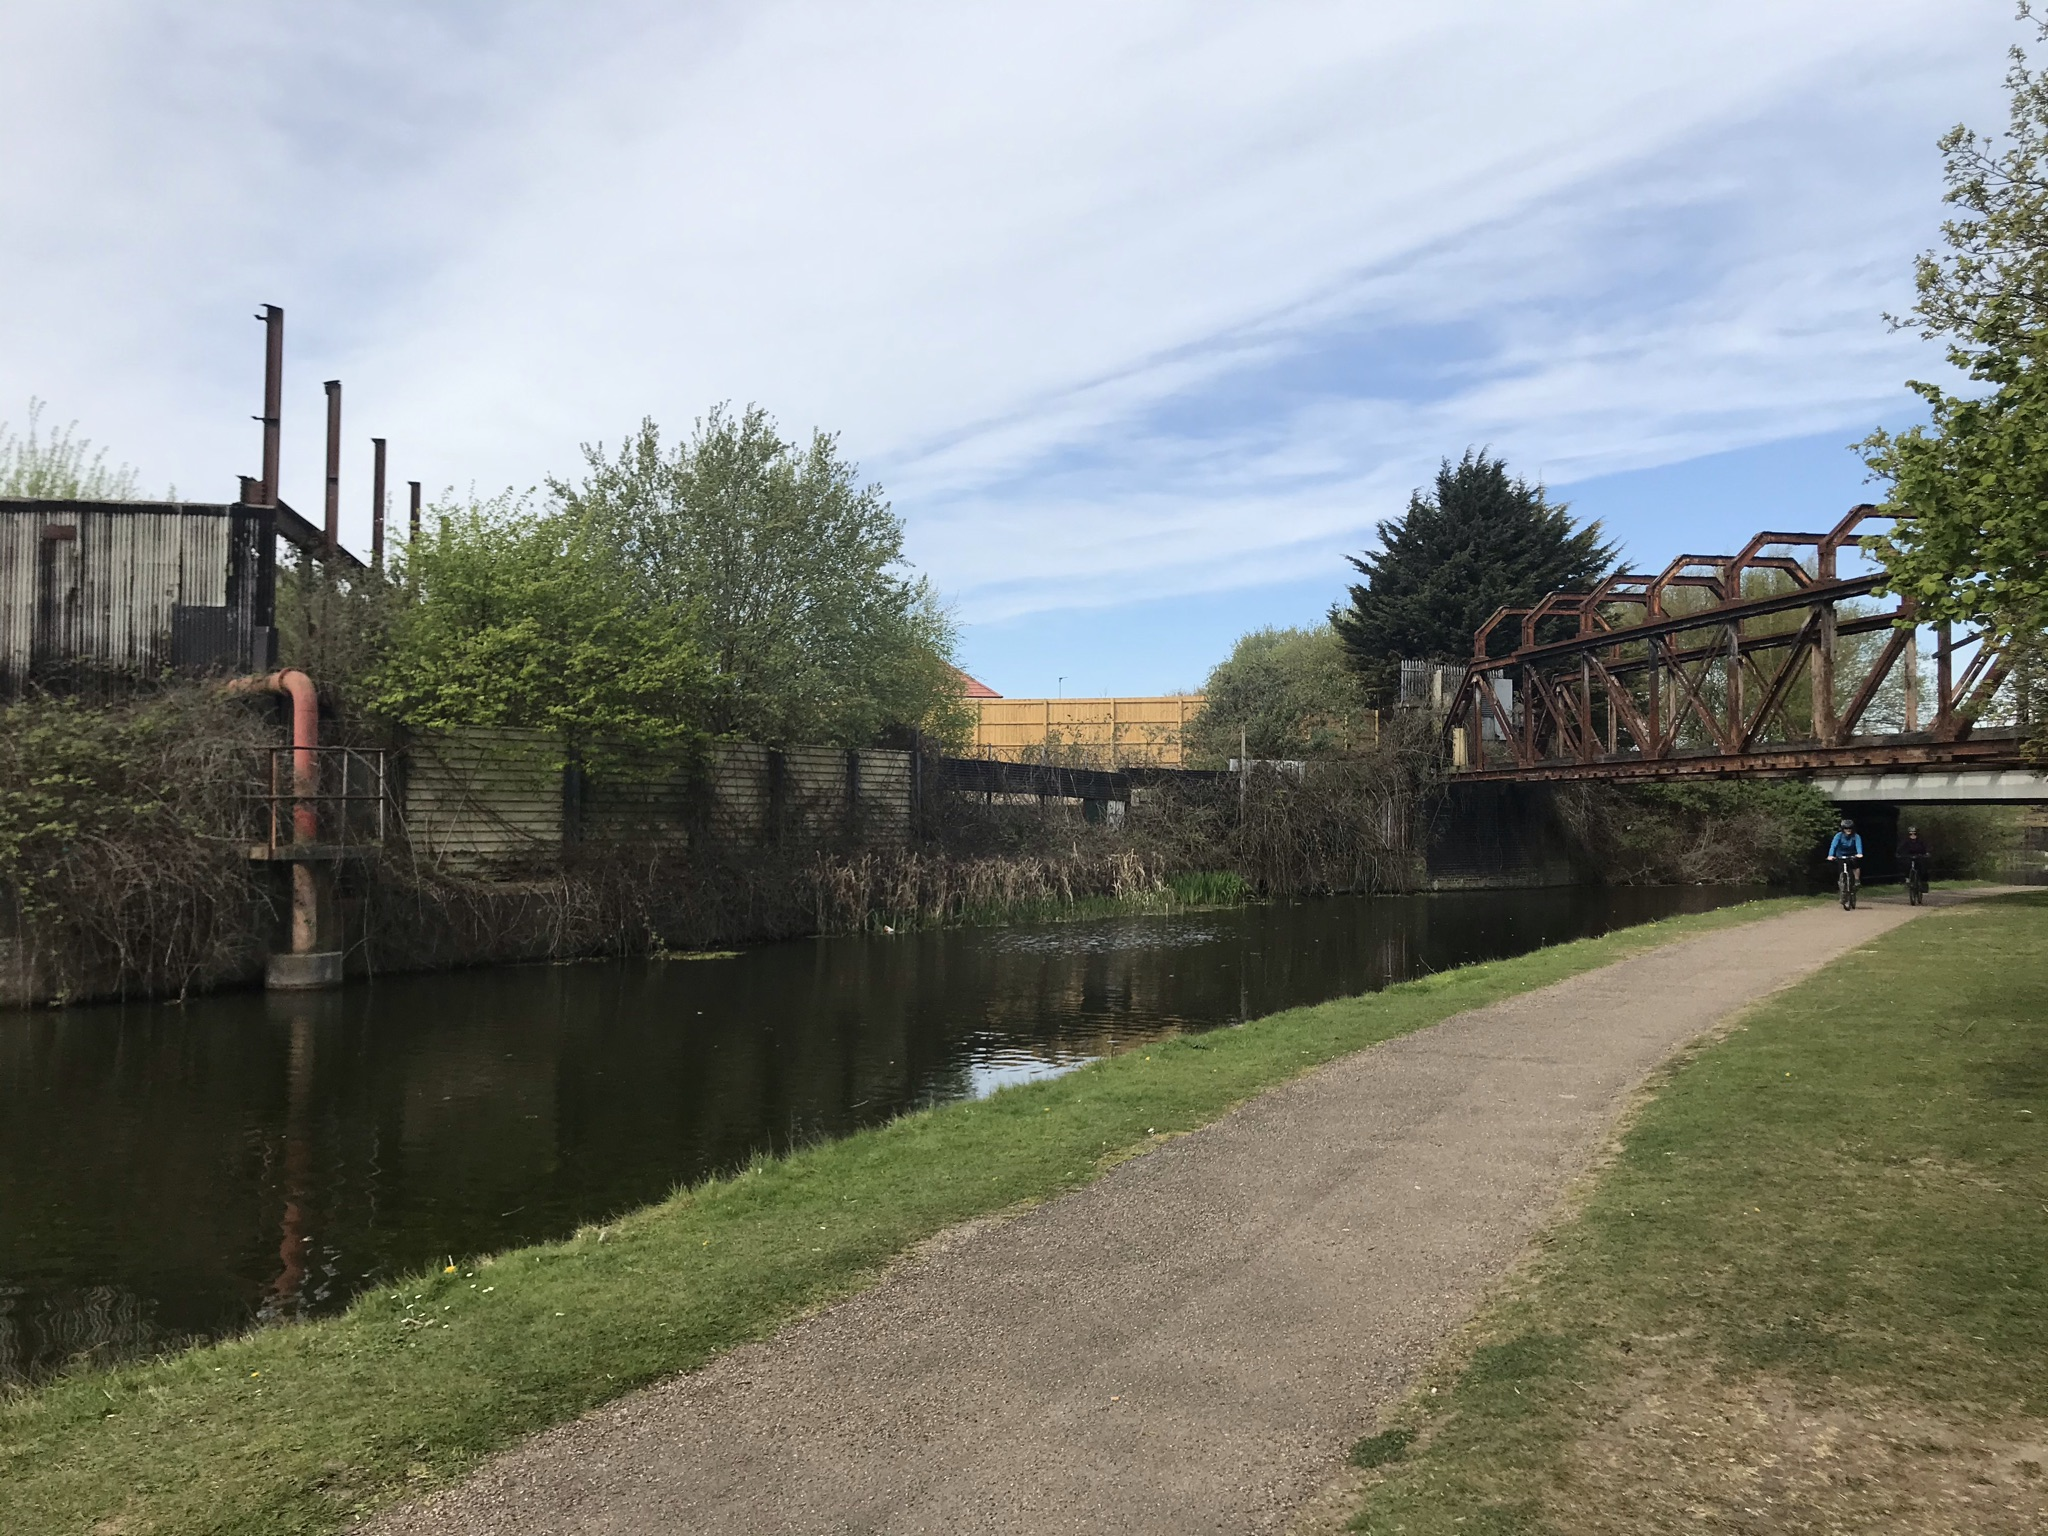 A towpath alongside the canal with a rusty steel frame bridge and dilapidated buildings